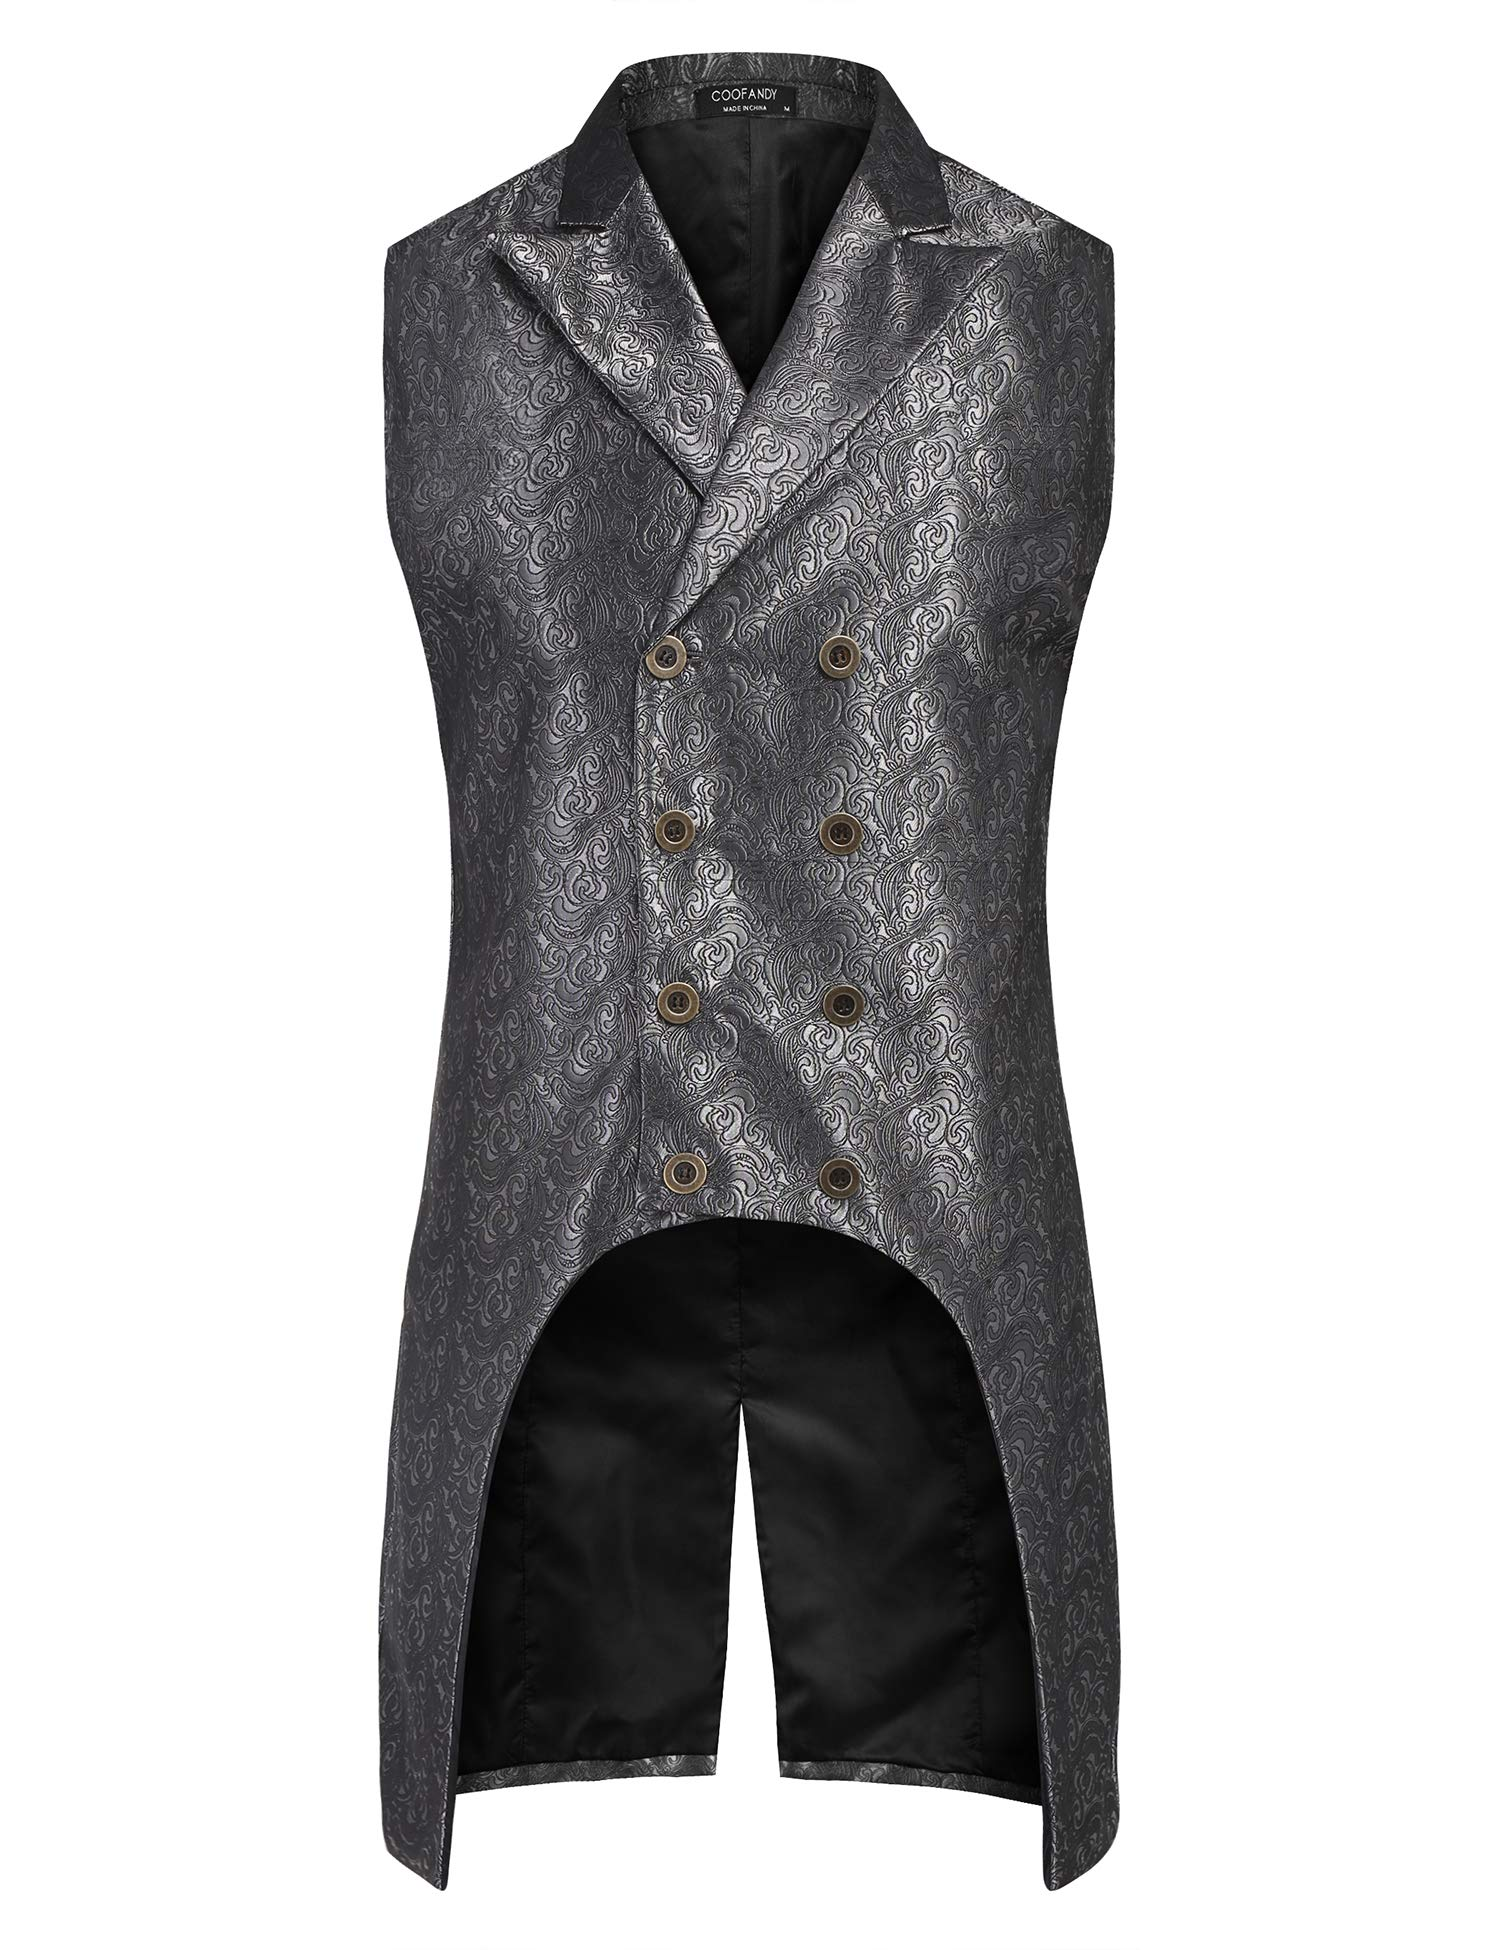 COOFANDY Men's Gothic Steampunk Vest Double Breasted Jacquard Brocade Waistcoat Black by COOFANDY